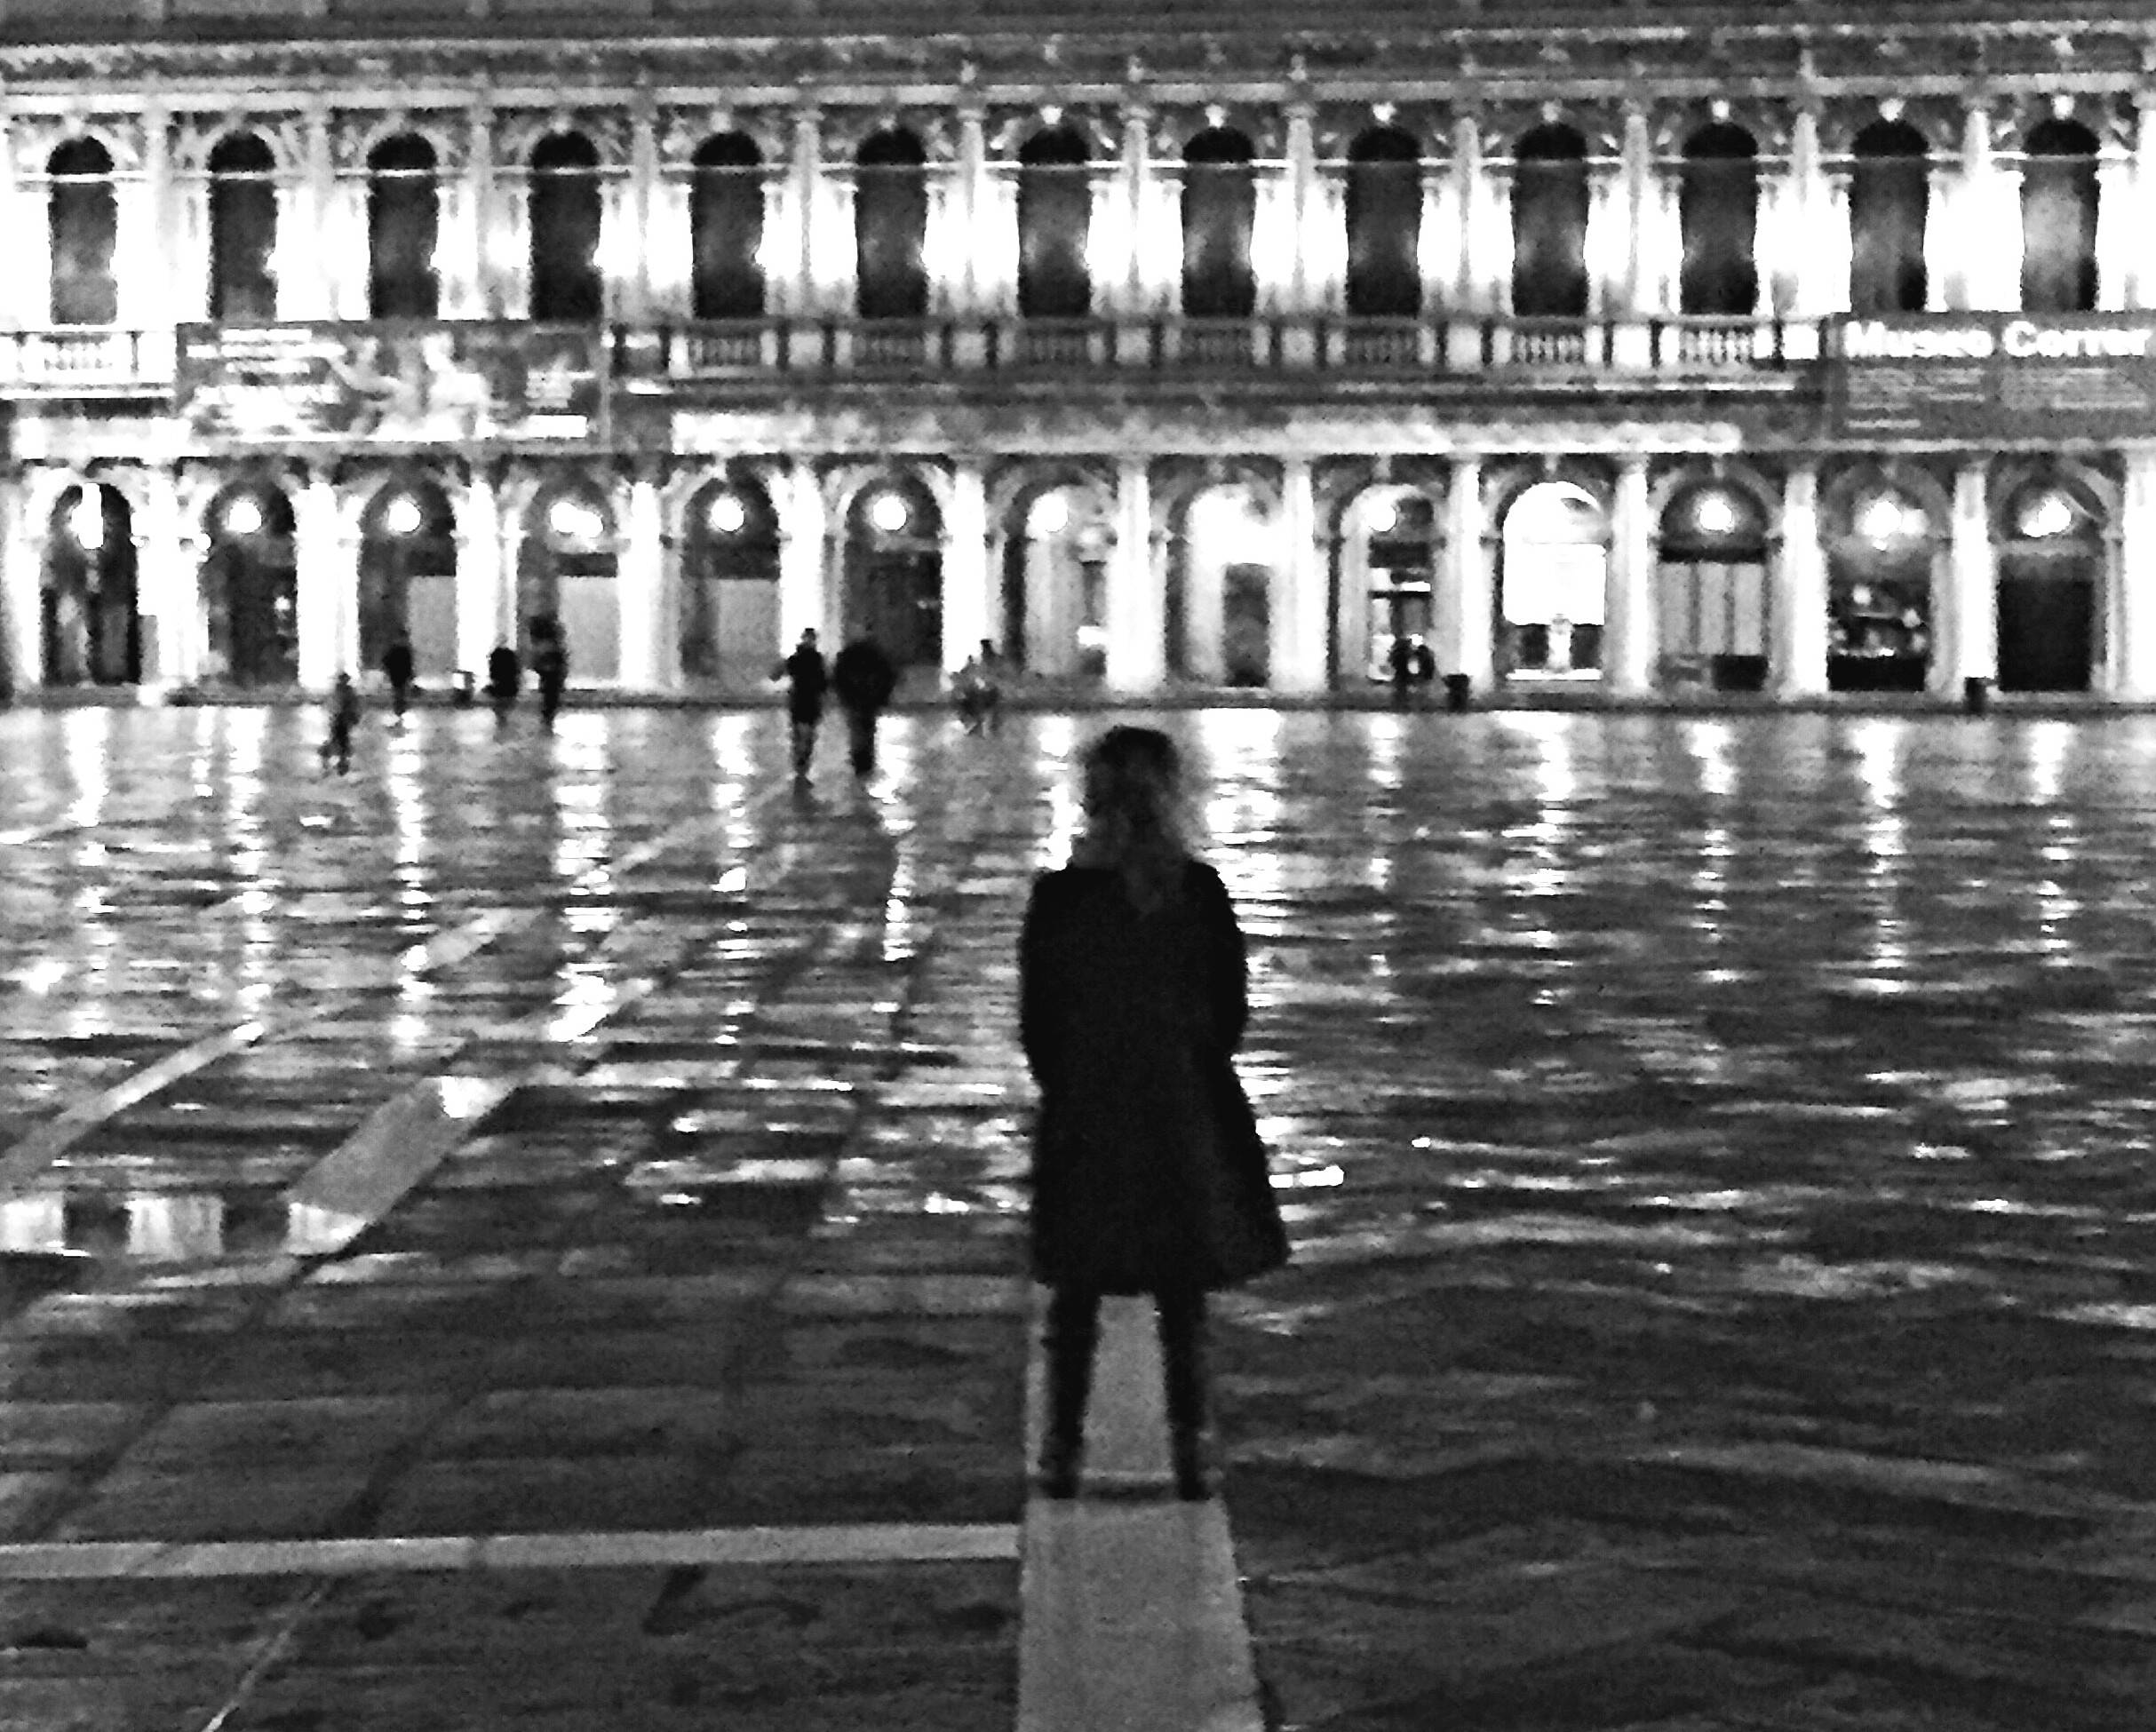 By now, you know that we loved our stay in Venice.  We stayed 4 days and managed to see most of the important areas and sites while enjoying some relaxing pauses.